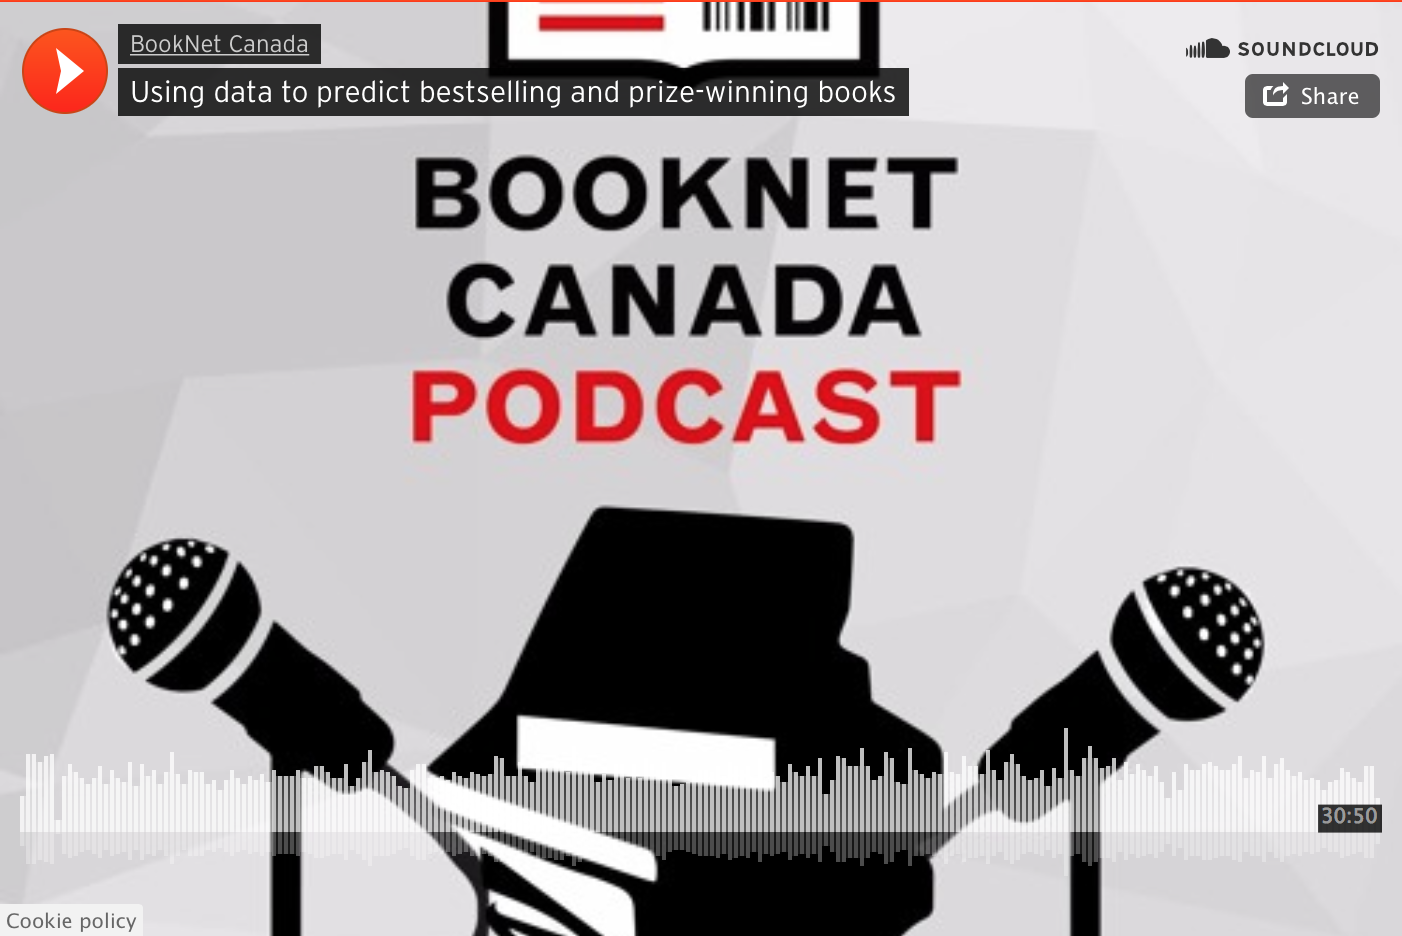 Interview with BookNet Canada on algorithms, publishing and creative writing